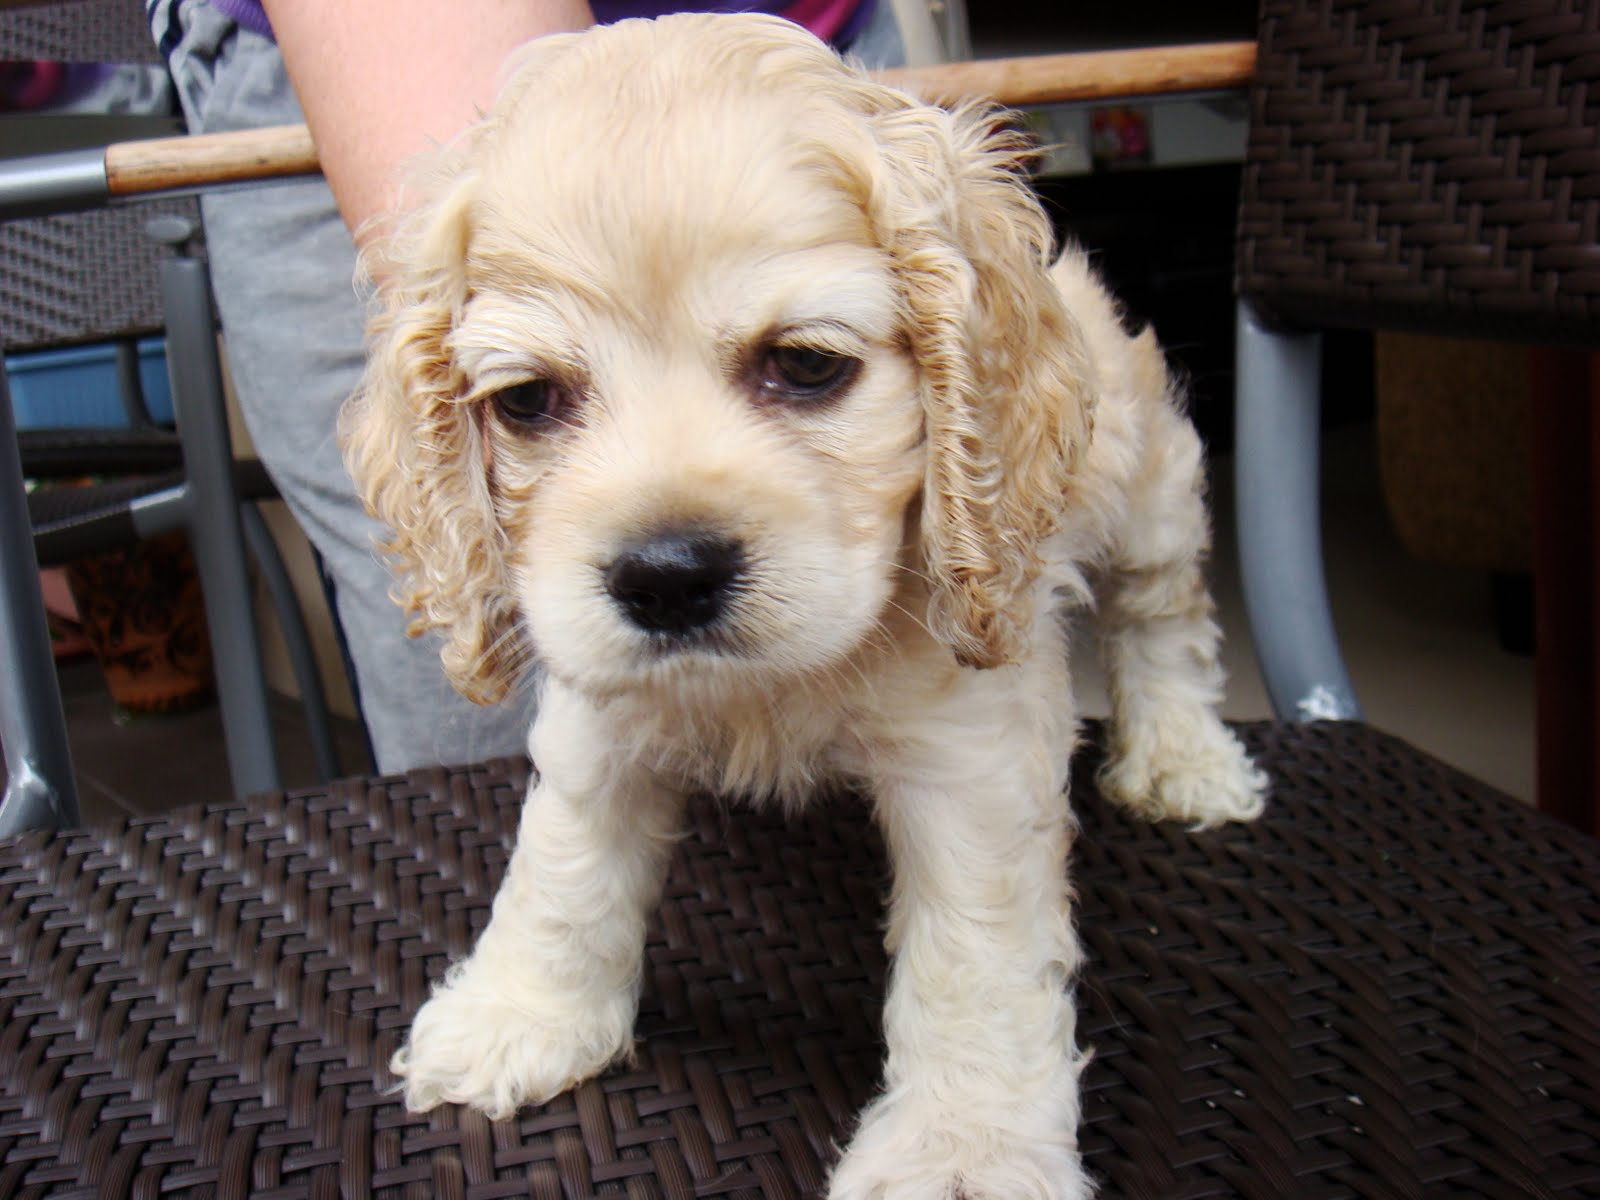 American cocker spaniel puppies - photo#23